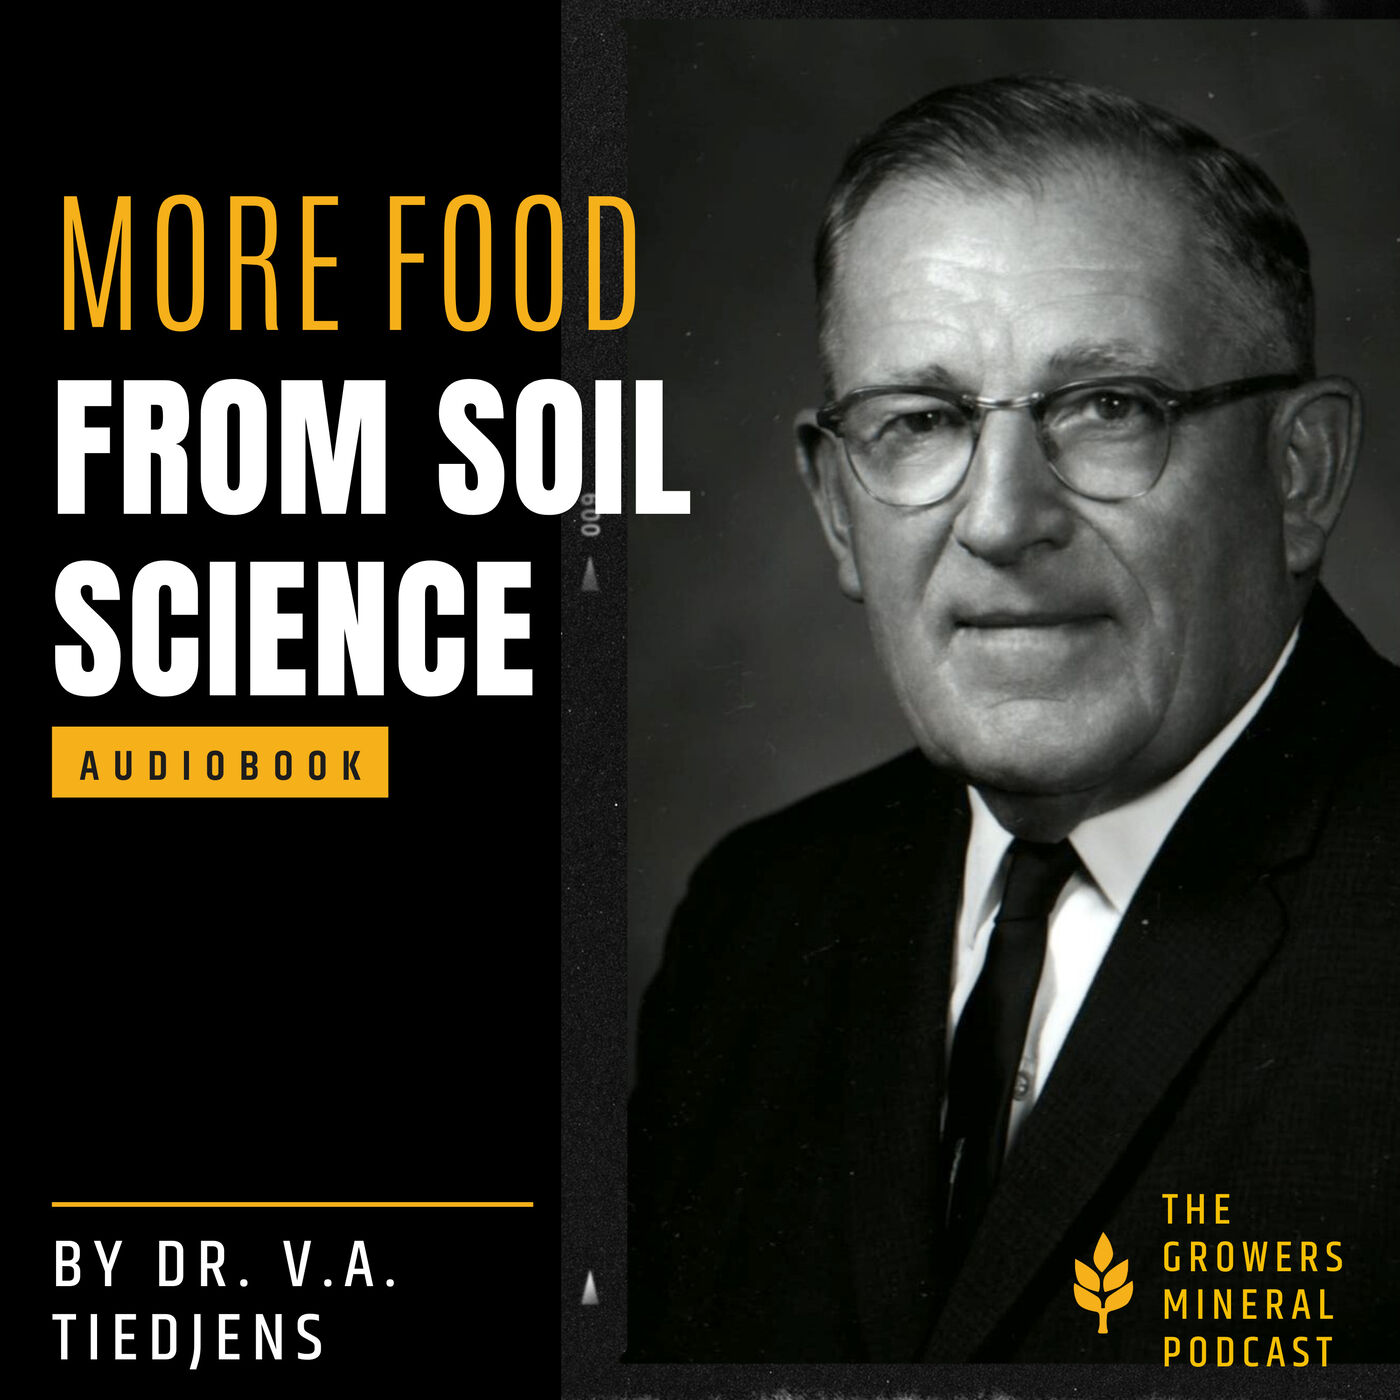 More Food from Soil Science Audiobook Ch. 6 - The Soils That We Farm